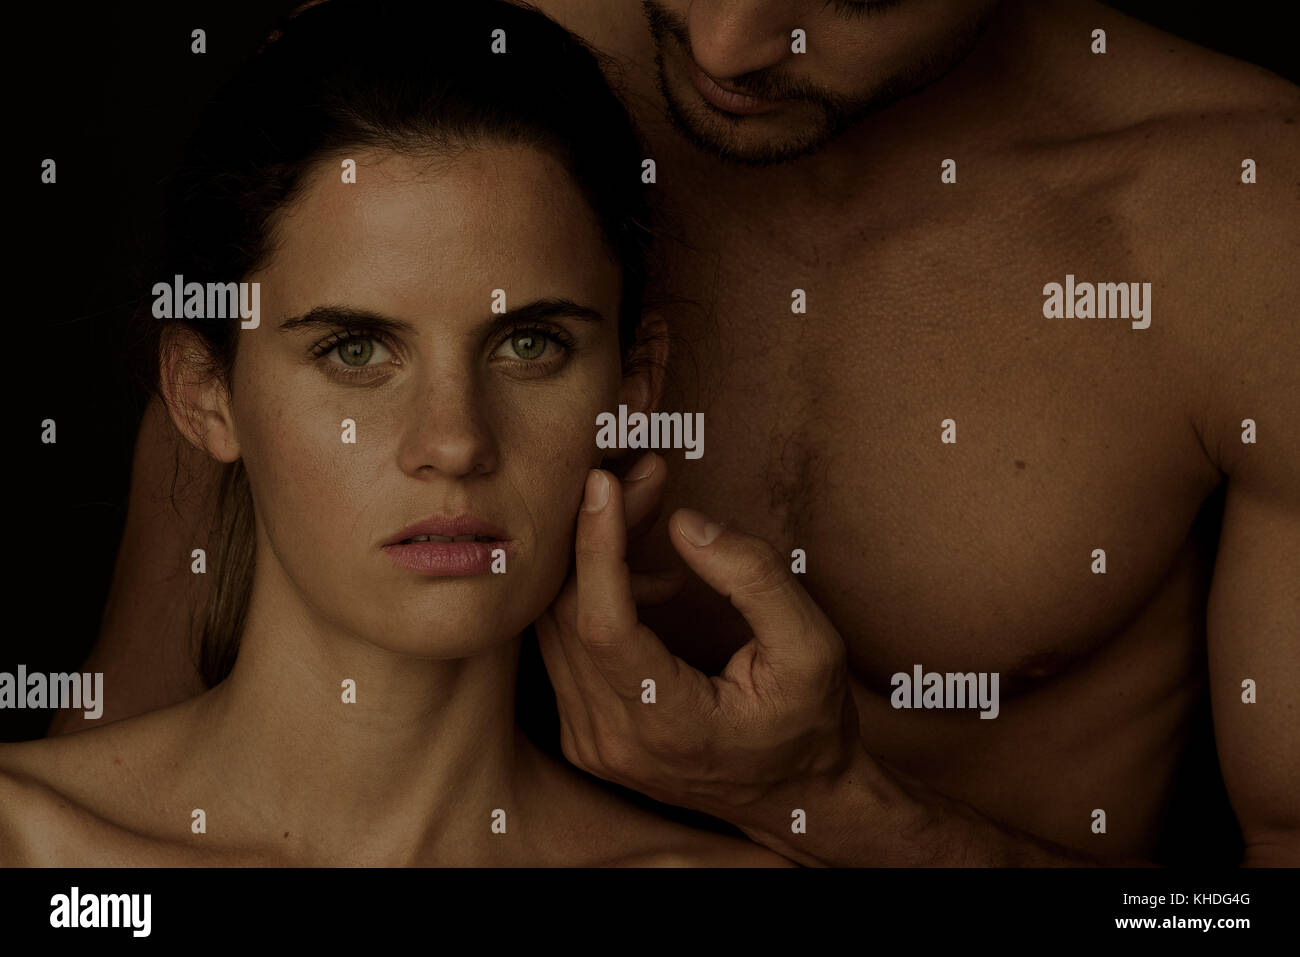 Barechested man caressing woman's cheek as she gazes at the camera Stock Photo